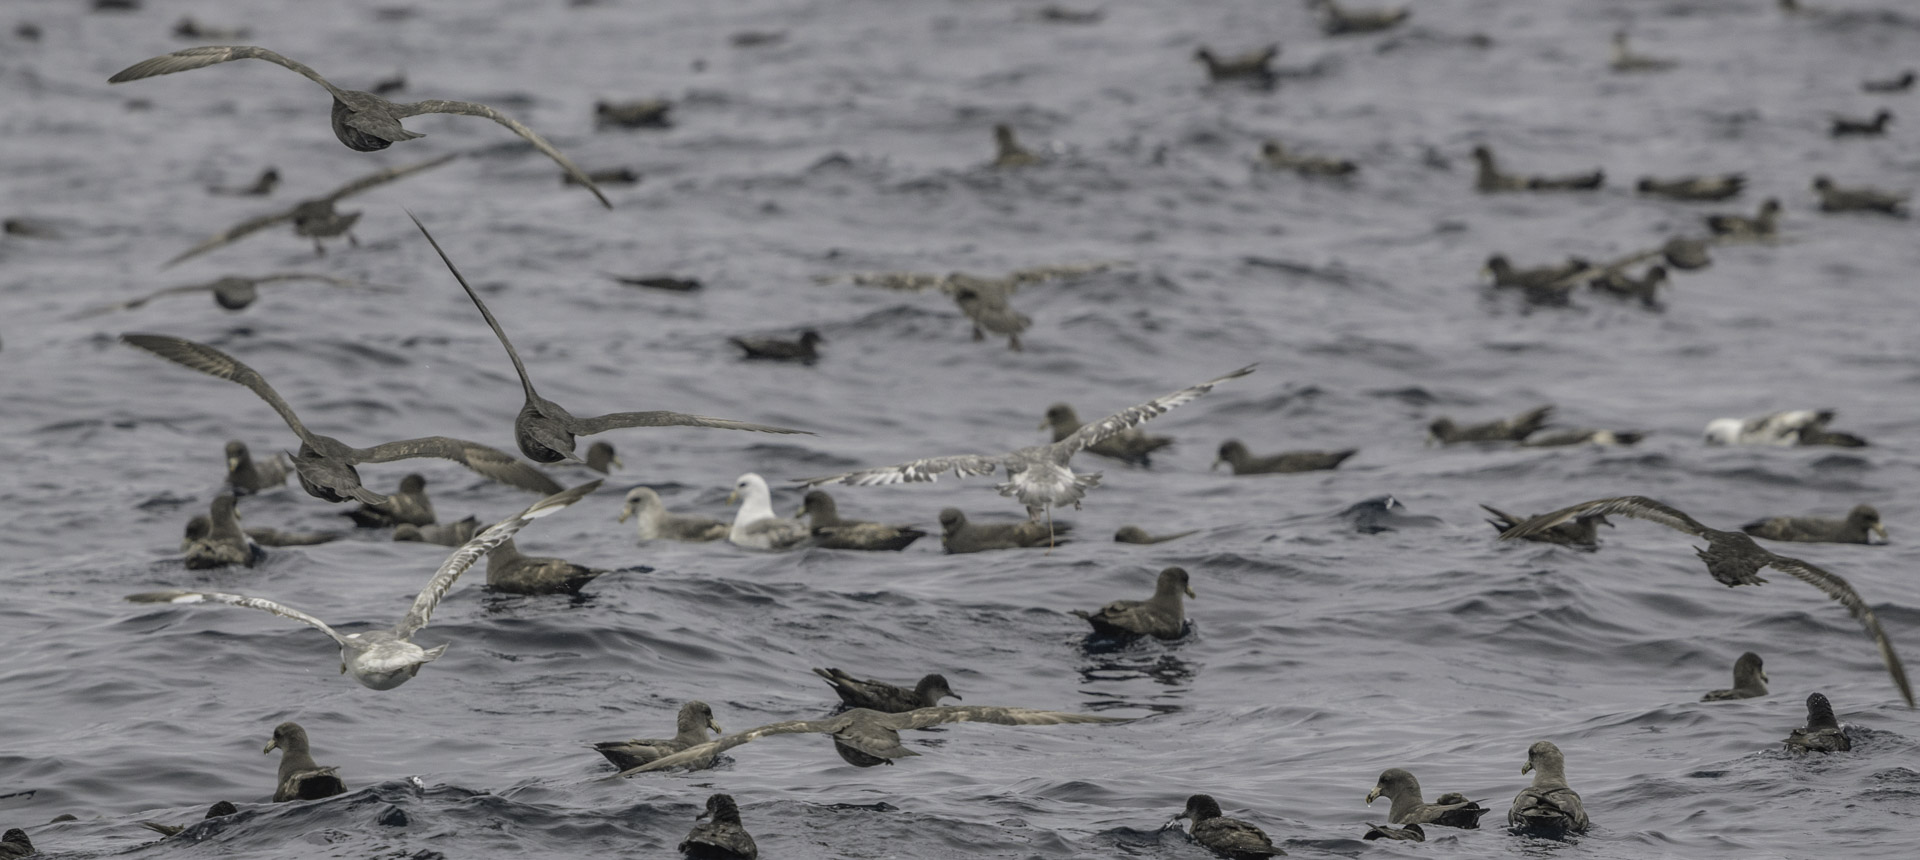 Northern fulmars and sooty shearwaters